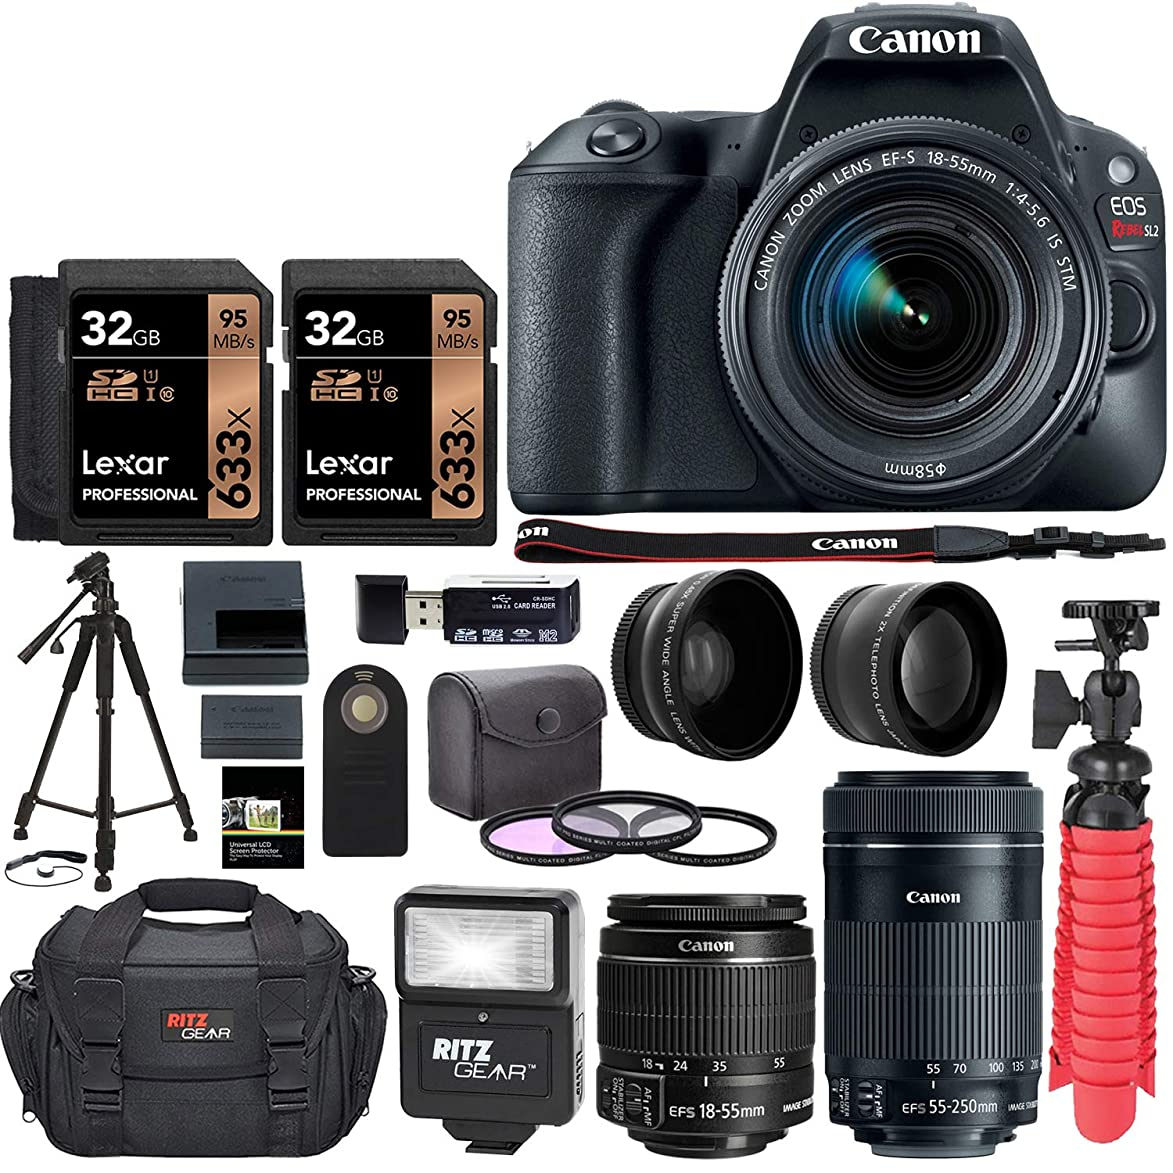 Canon EOS Rebel SL2 DSLR Camera with EF-S 18-55mm STM & 55-250 is STM Lenses, Two Lexar 32GB Memory Cards, Flexi-Tripod and Accessory Bundle